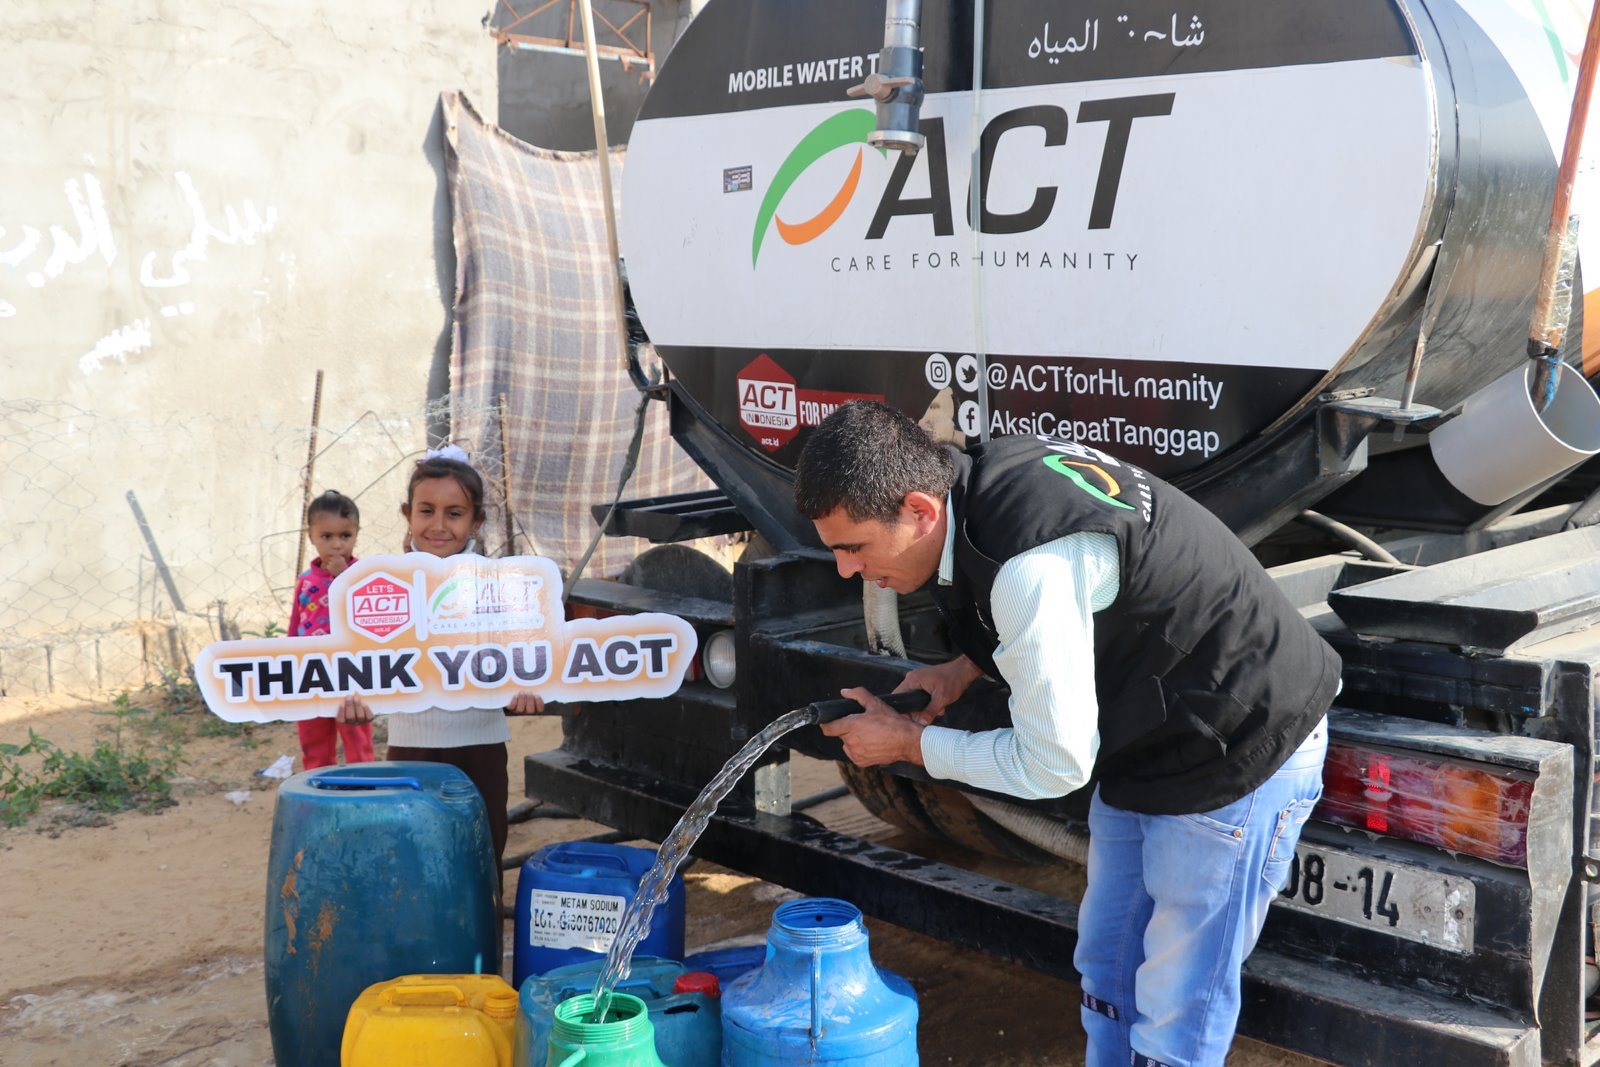 Refugees in Palestine Still Afflicted with Clean Water Crisis's image